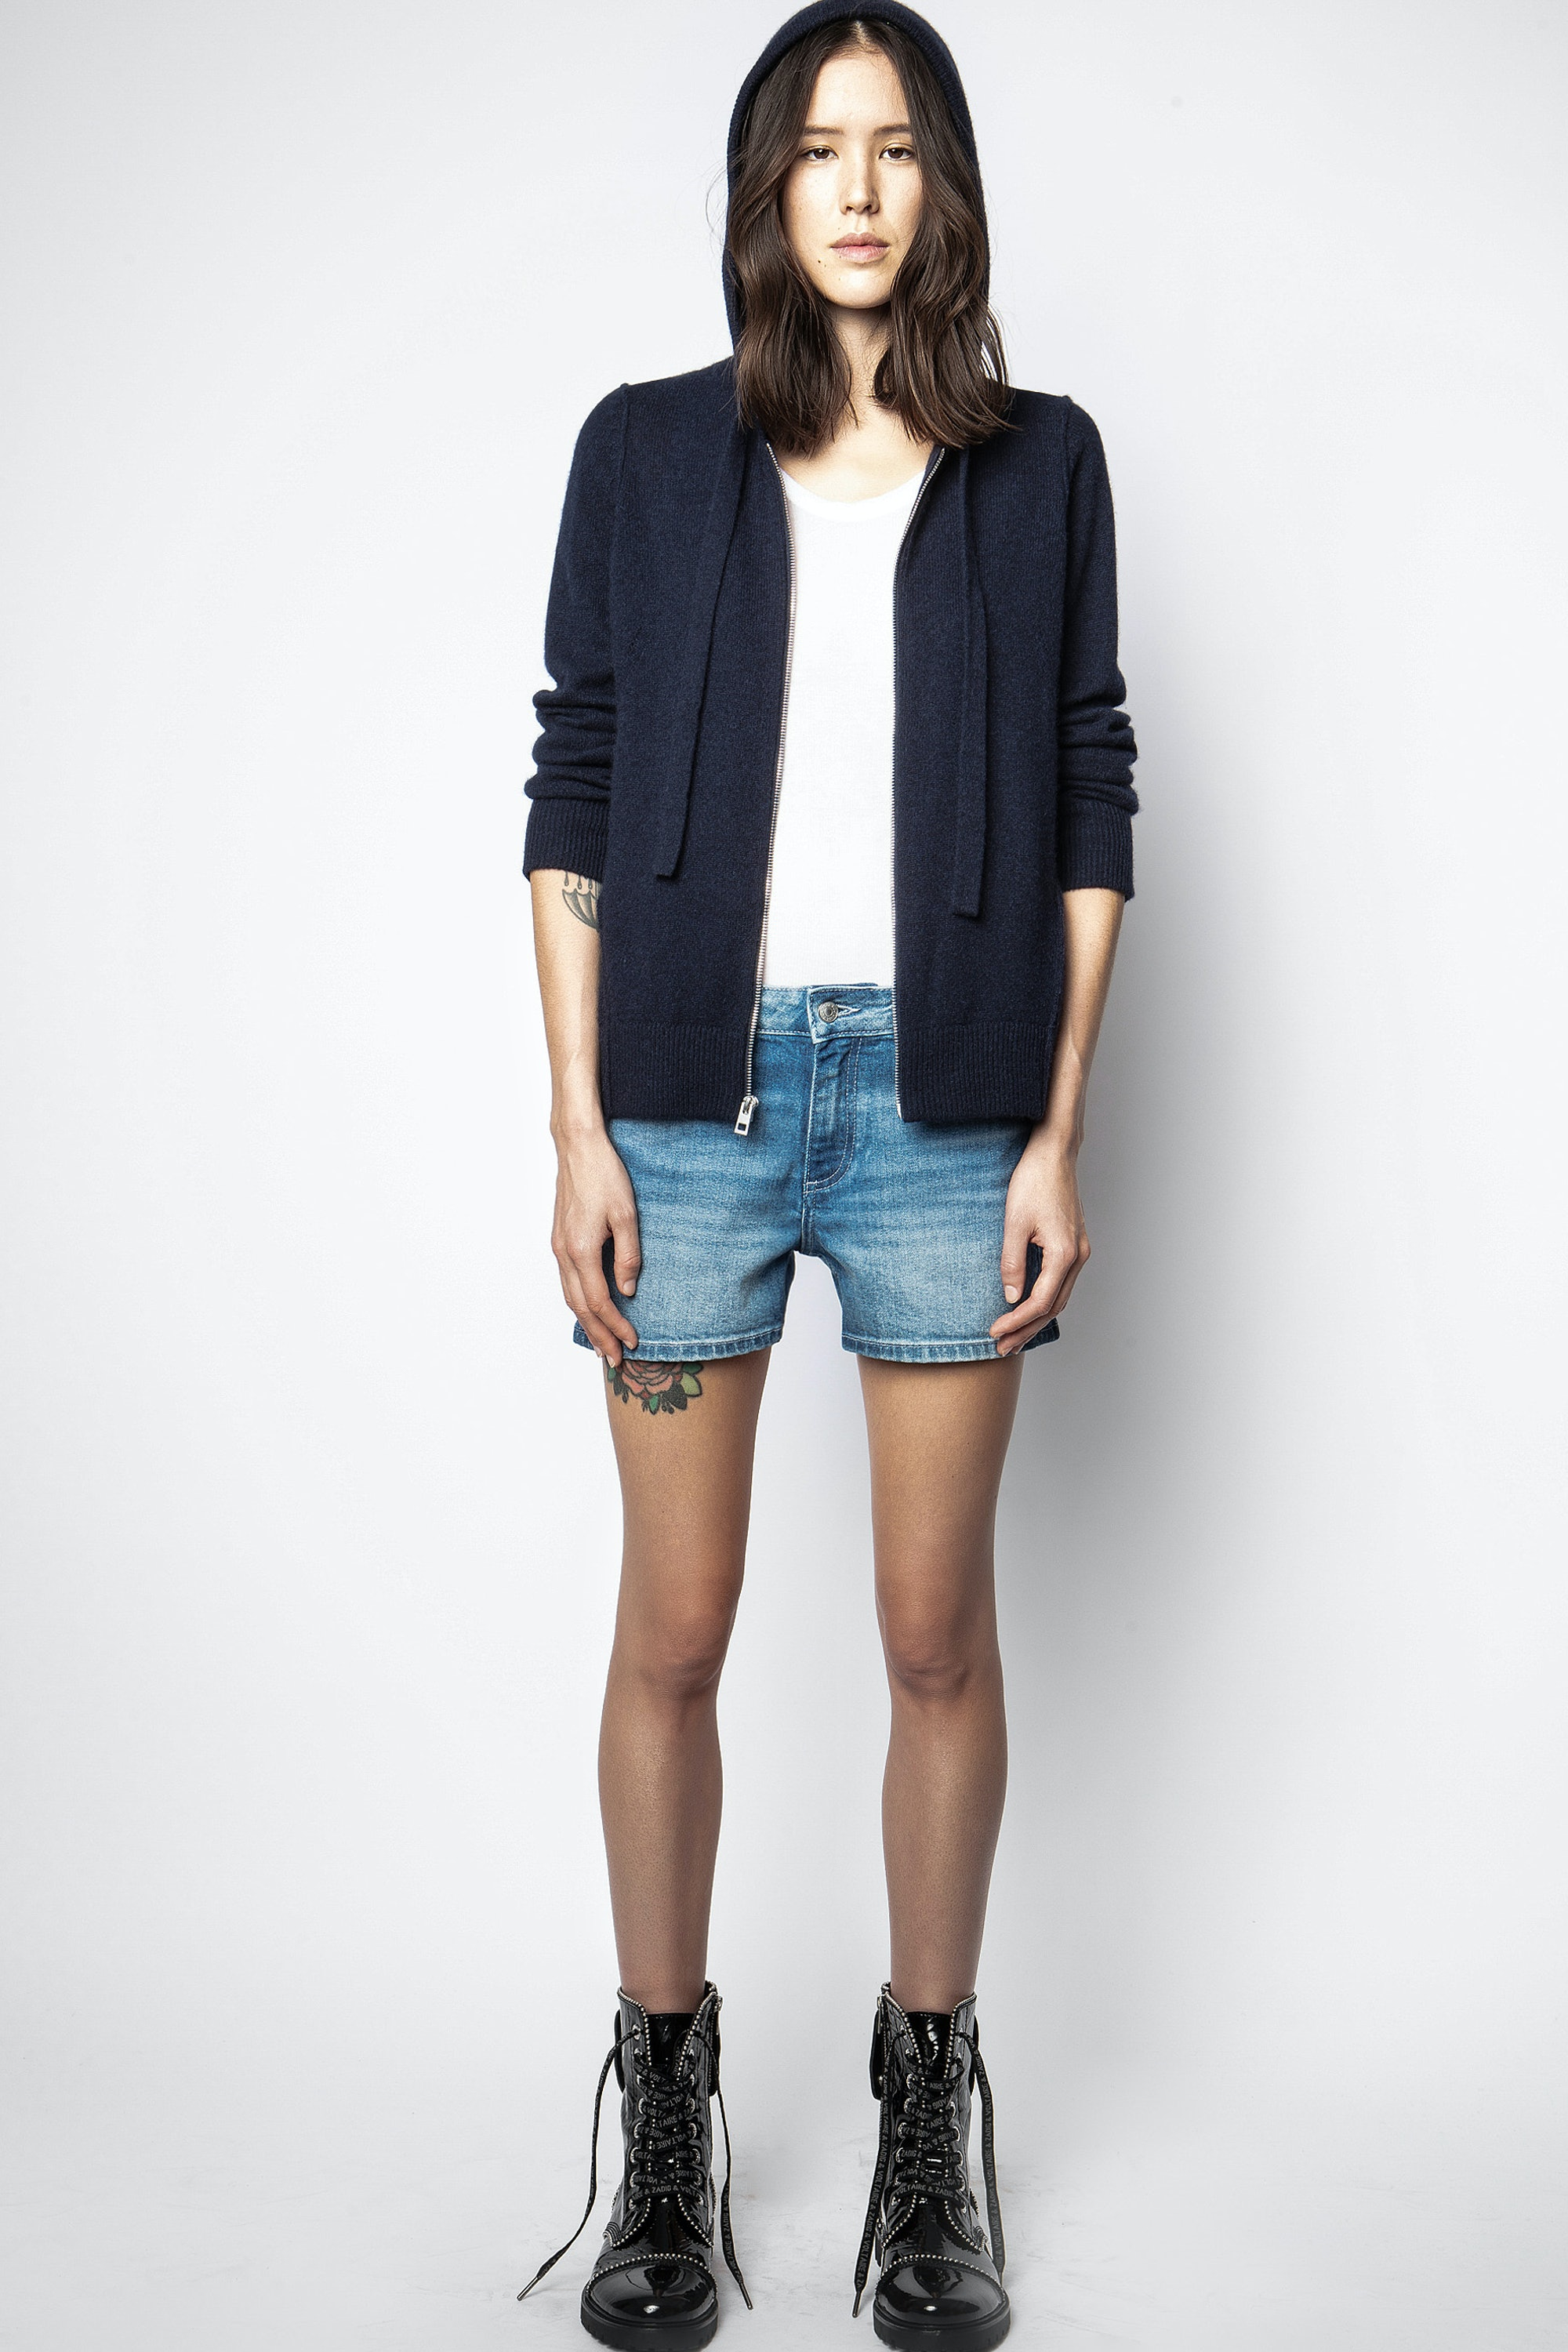 Cassy Patch Cachemire Cardigan